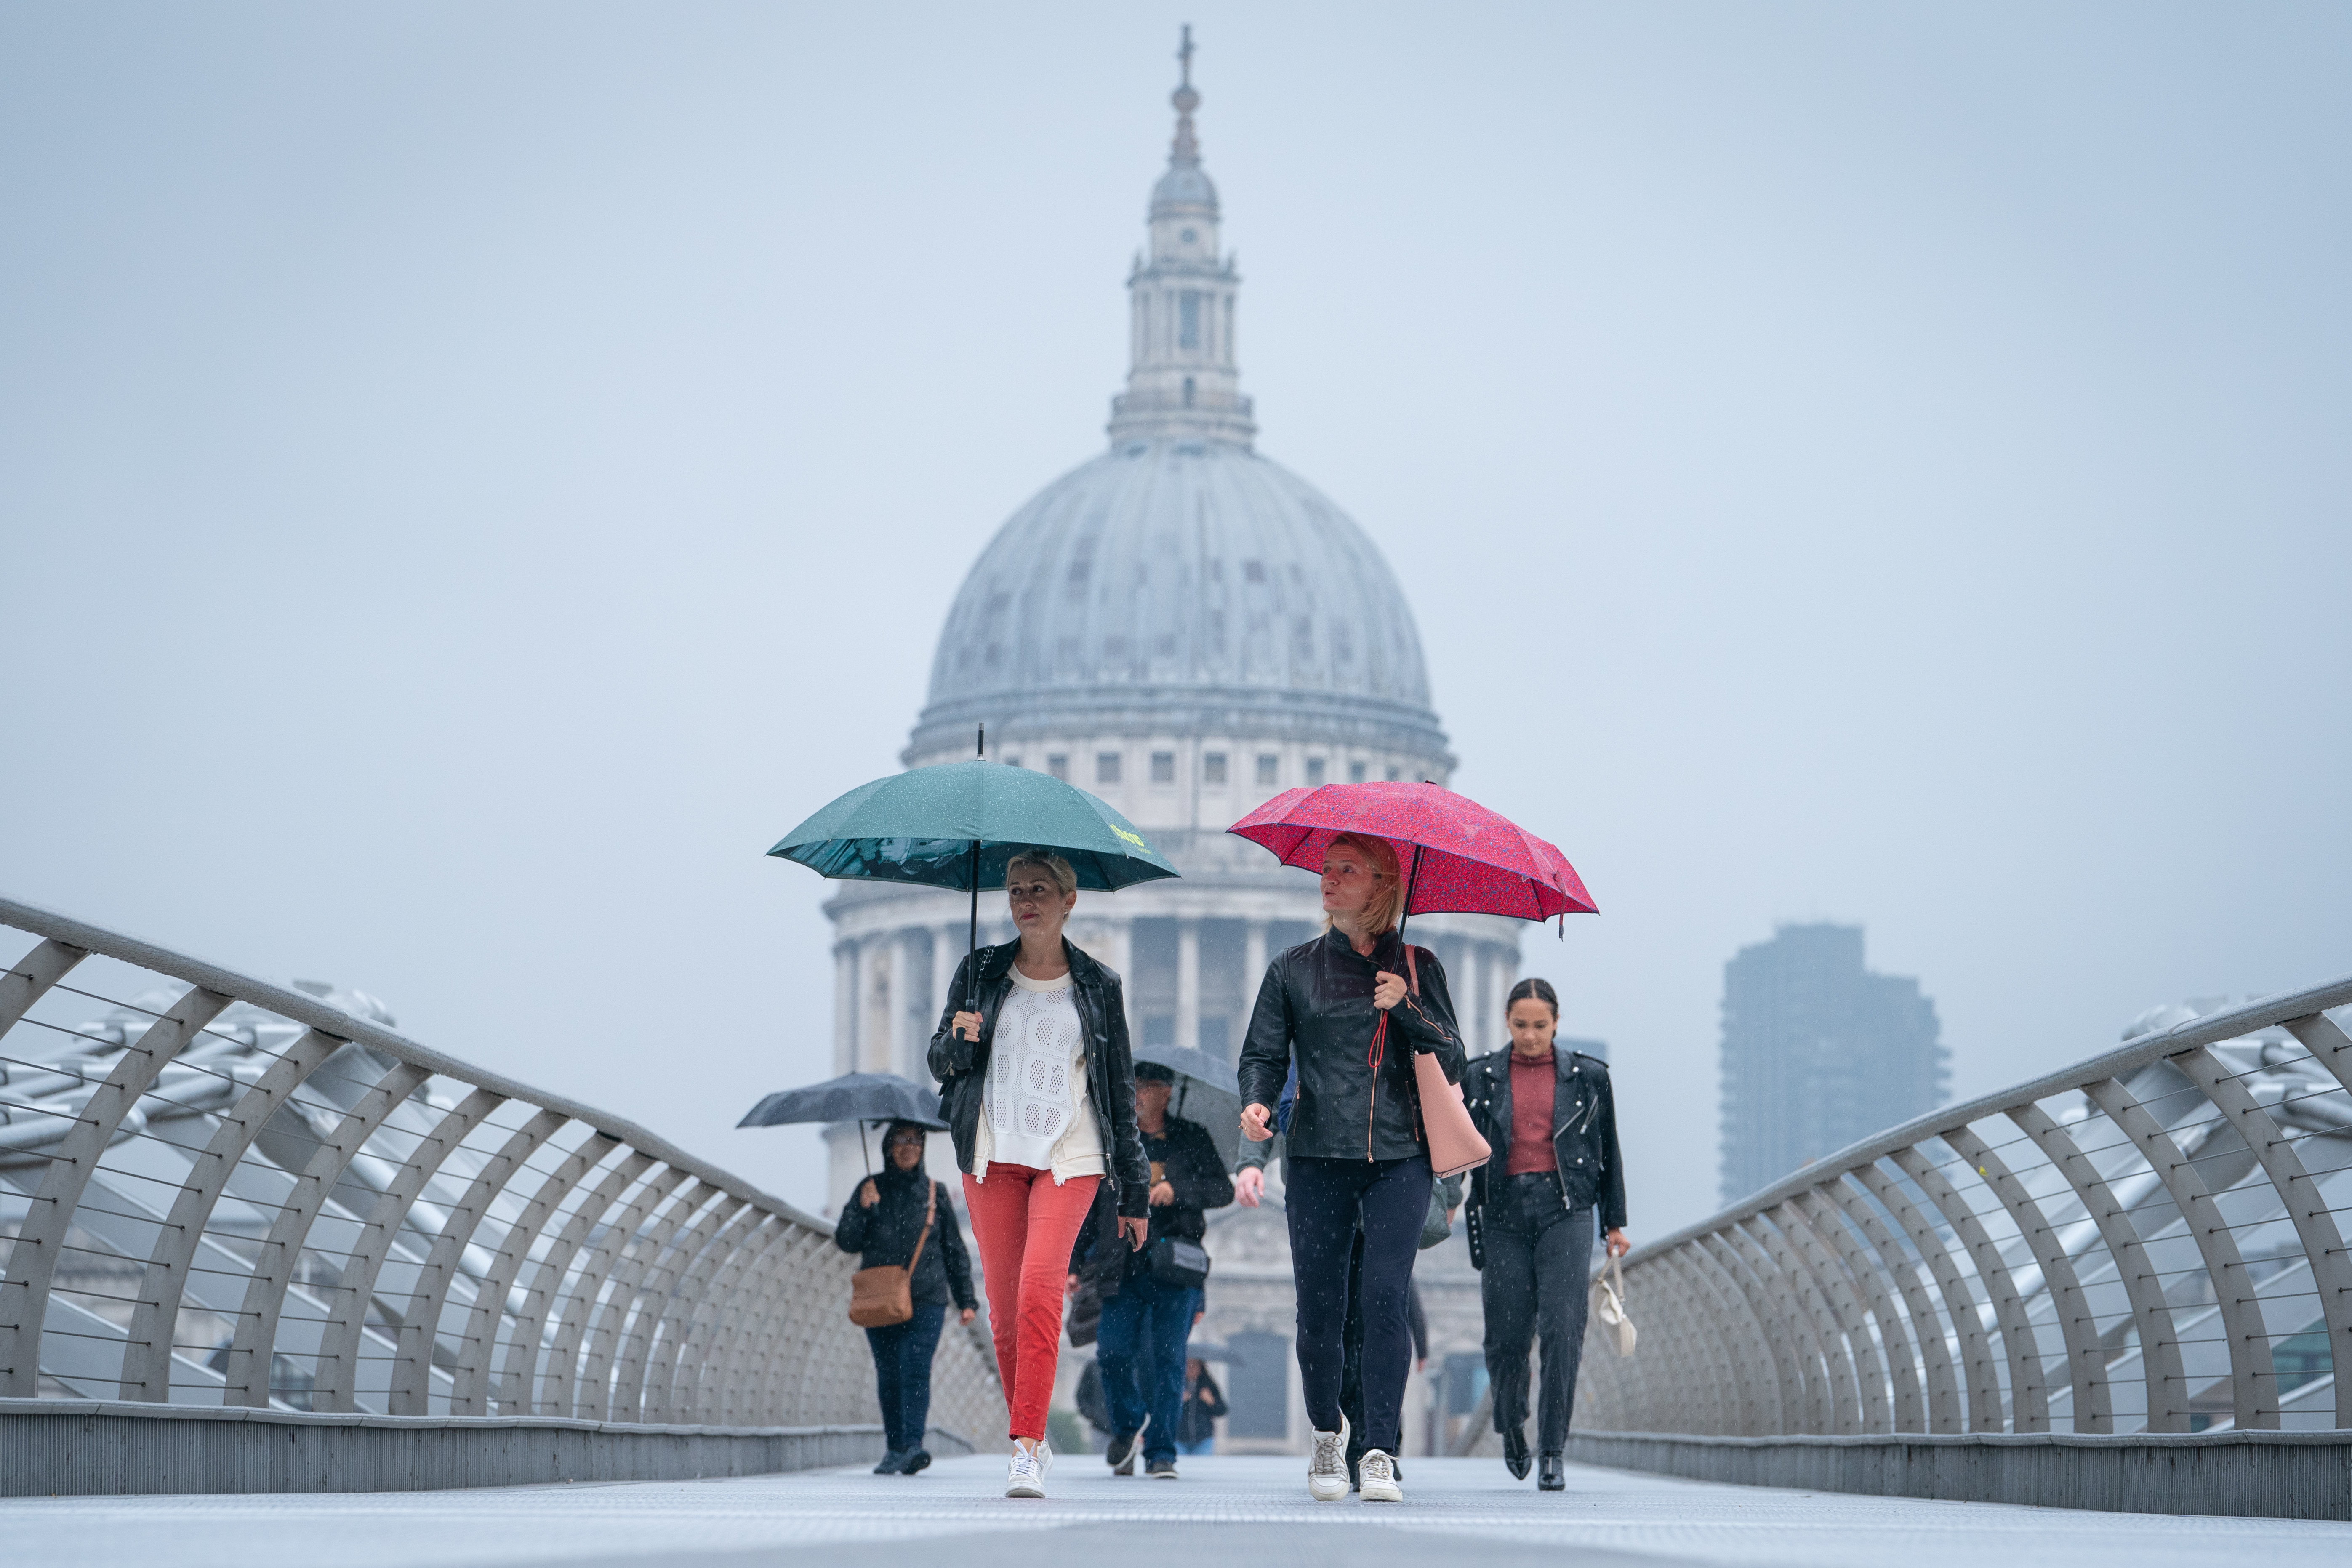 <p>People shelter from the rain under umbrellas as they cross the Millennium Bridge near St Paul's Cathedral, in central London. Picture date: Tuesday September 14, 2021.</p>